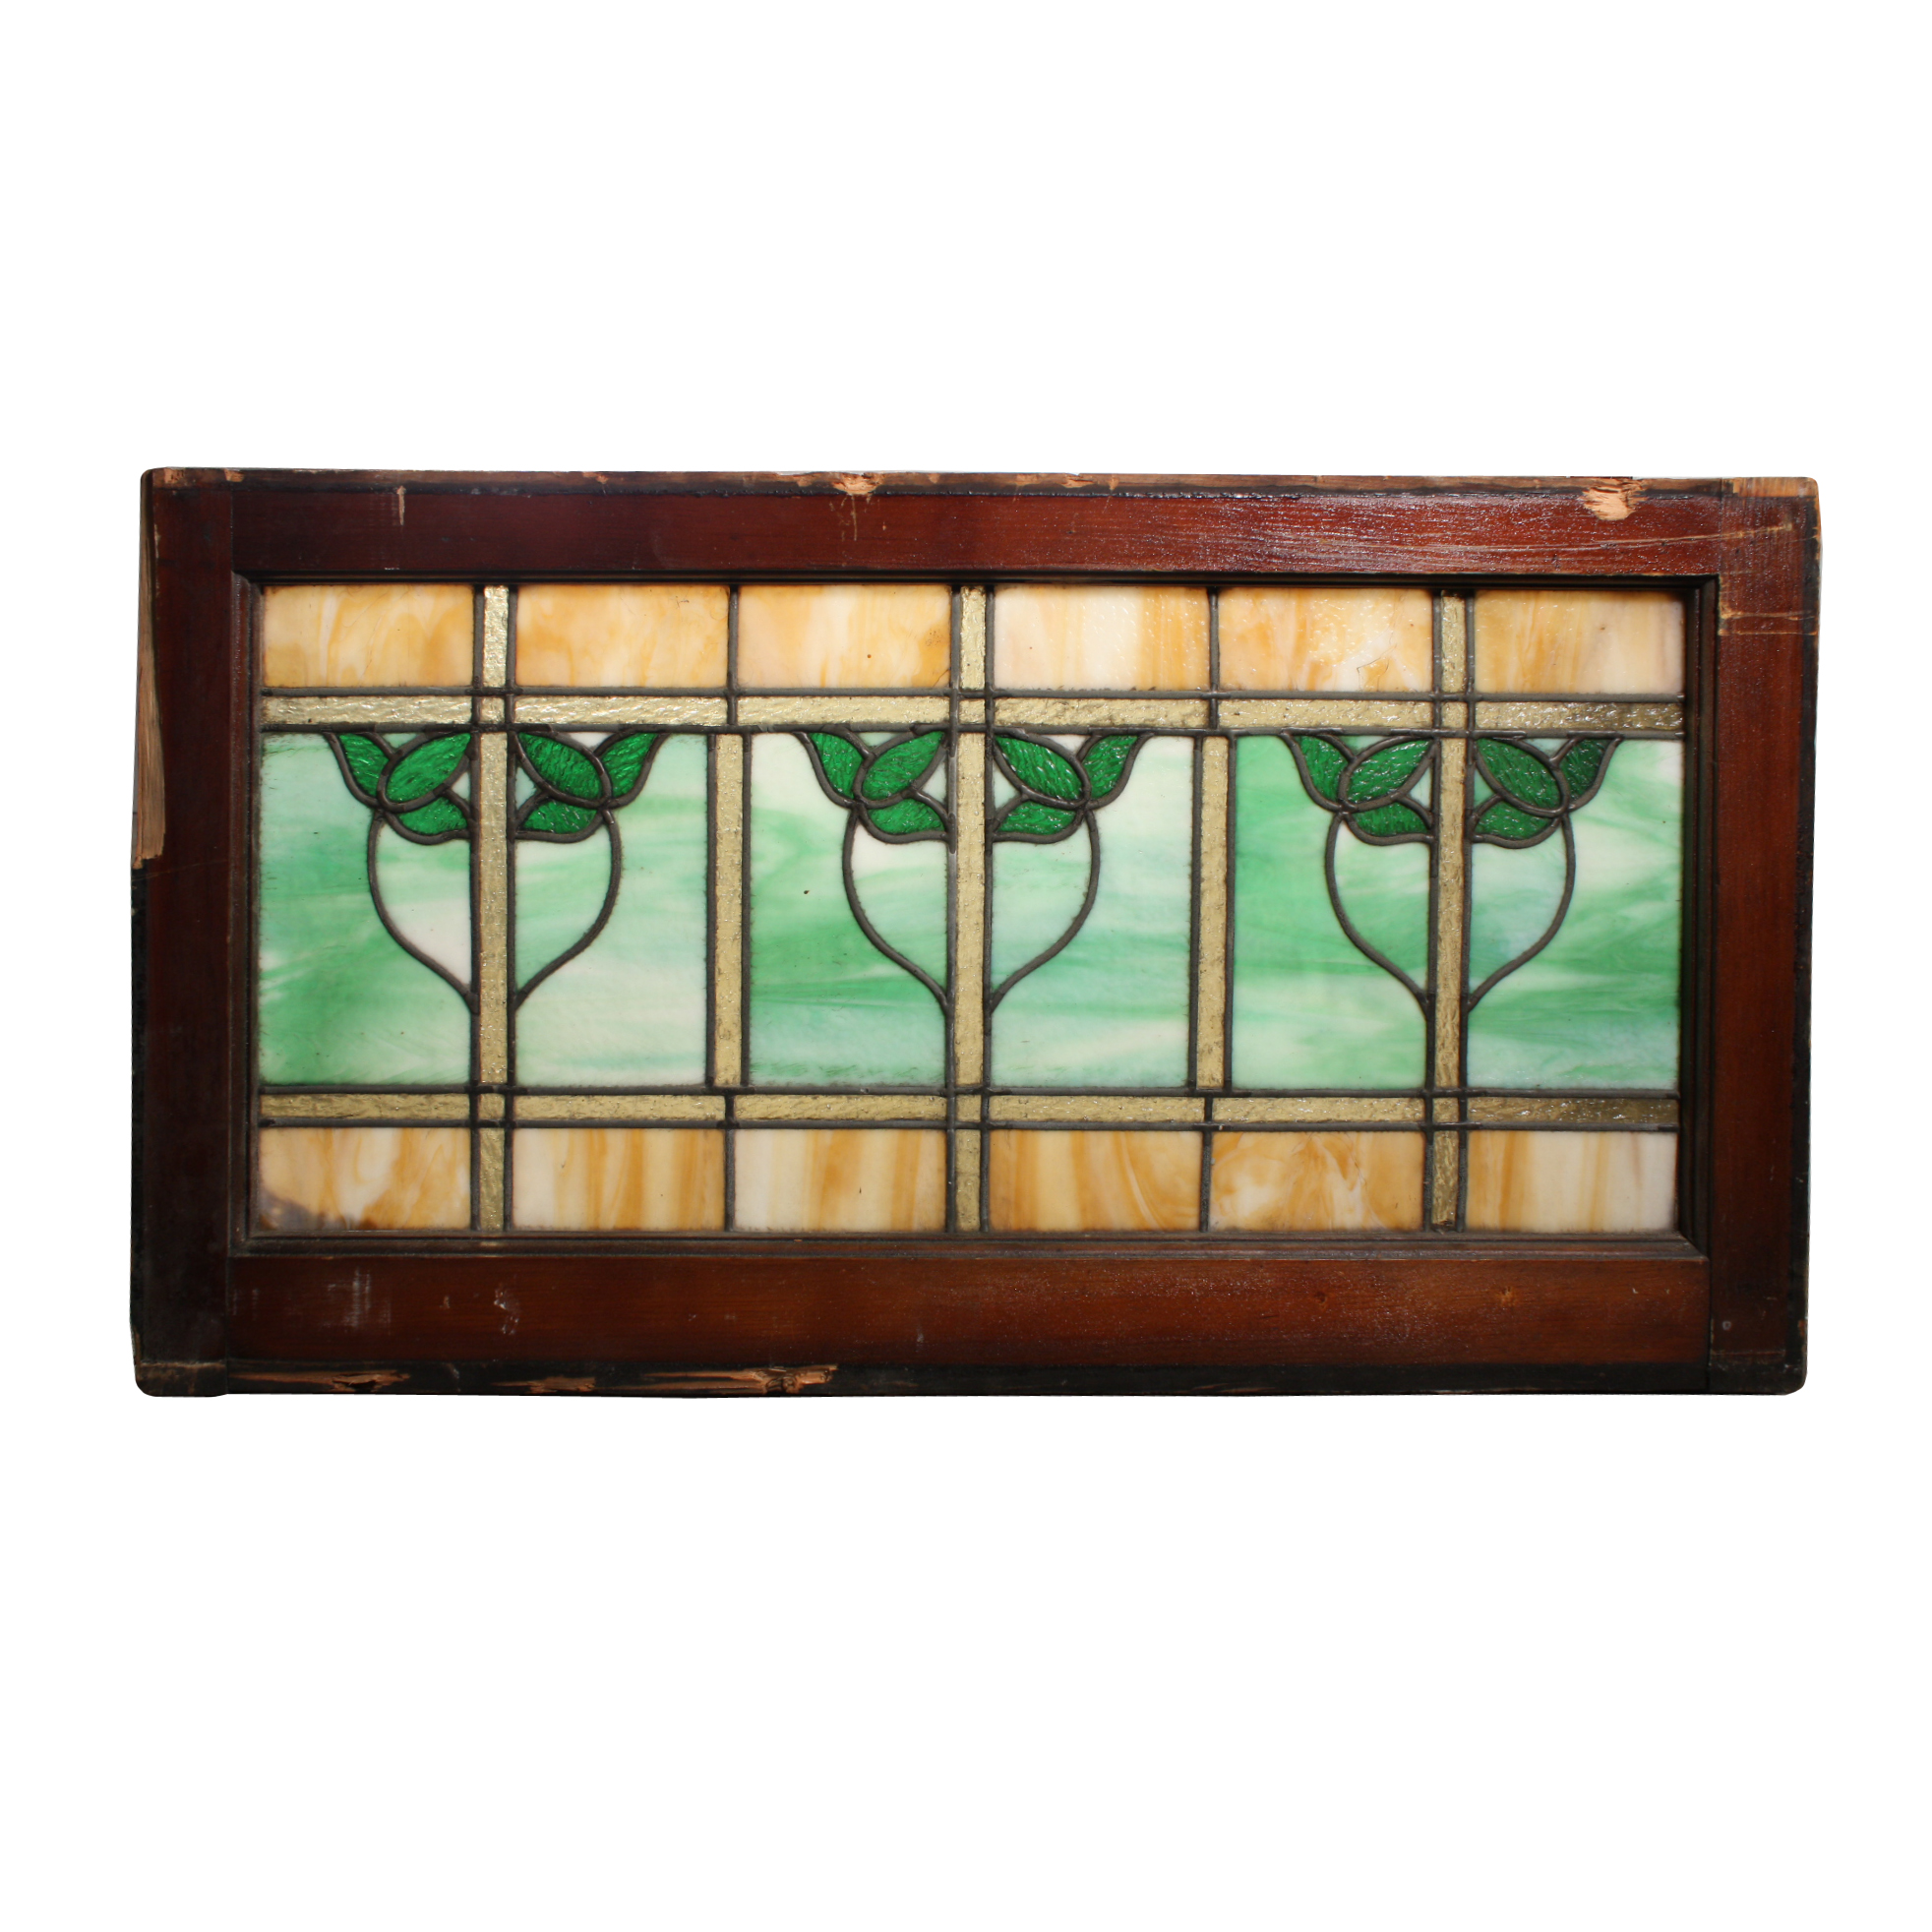 Exquisite antique american stained glass window c 1900 39 s for 1900 stained glass window